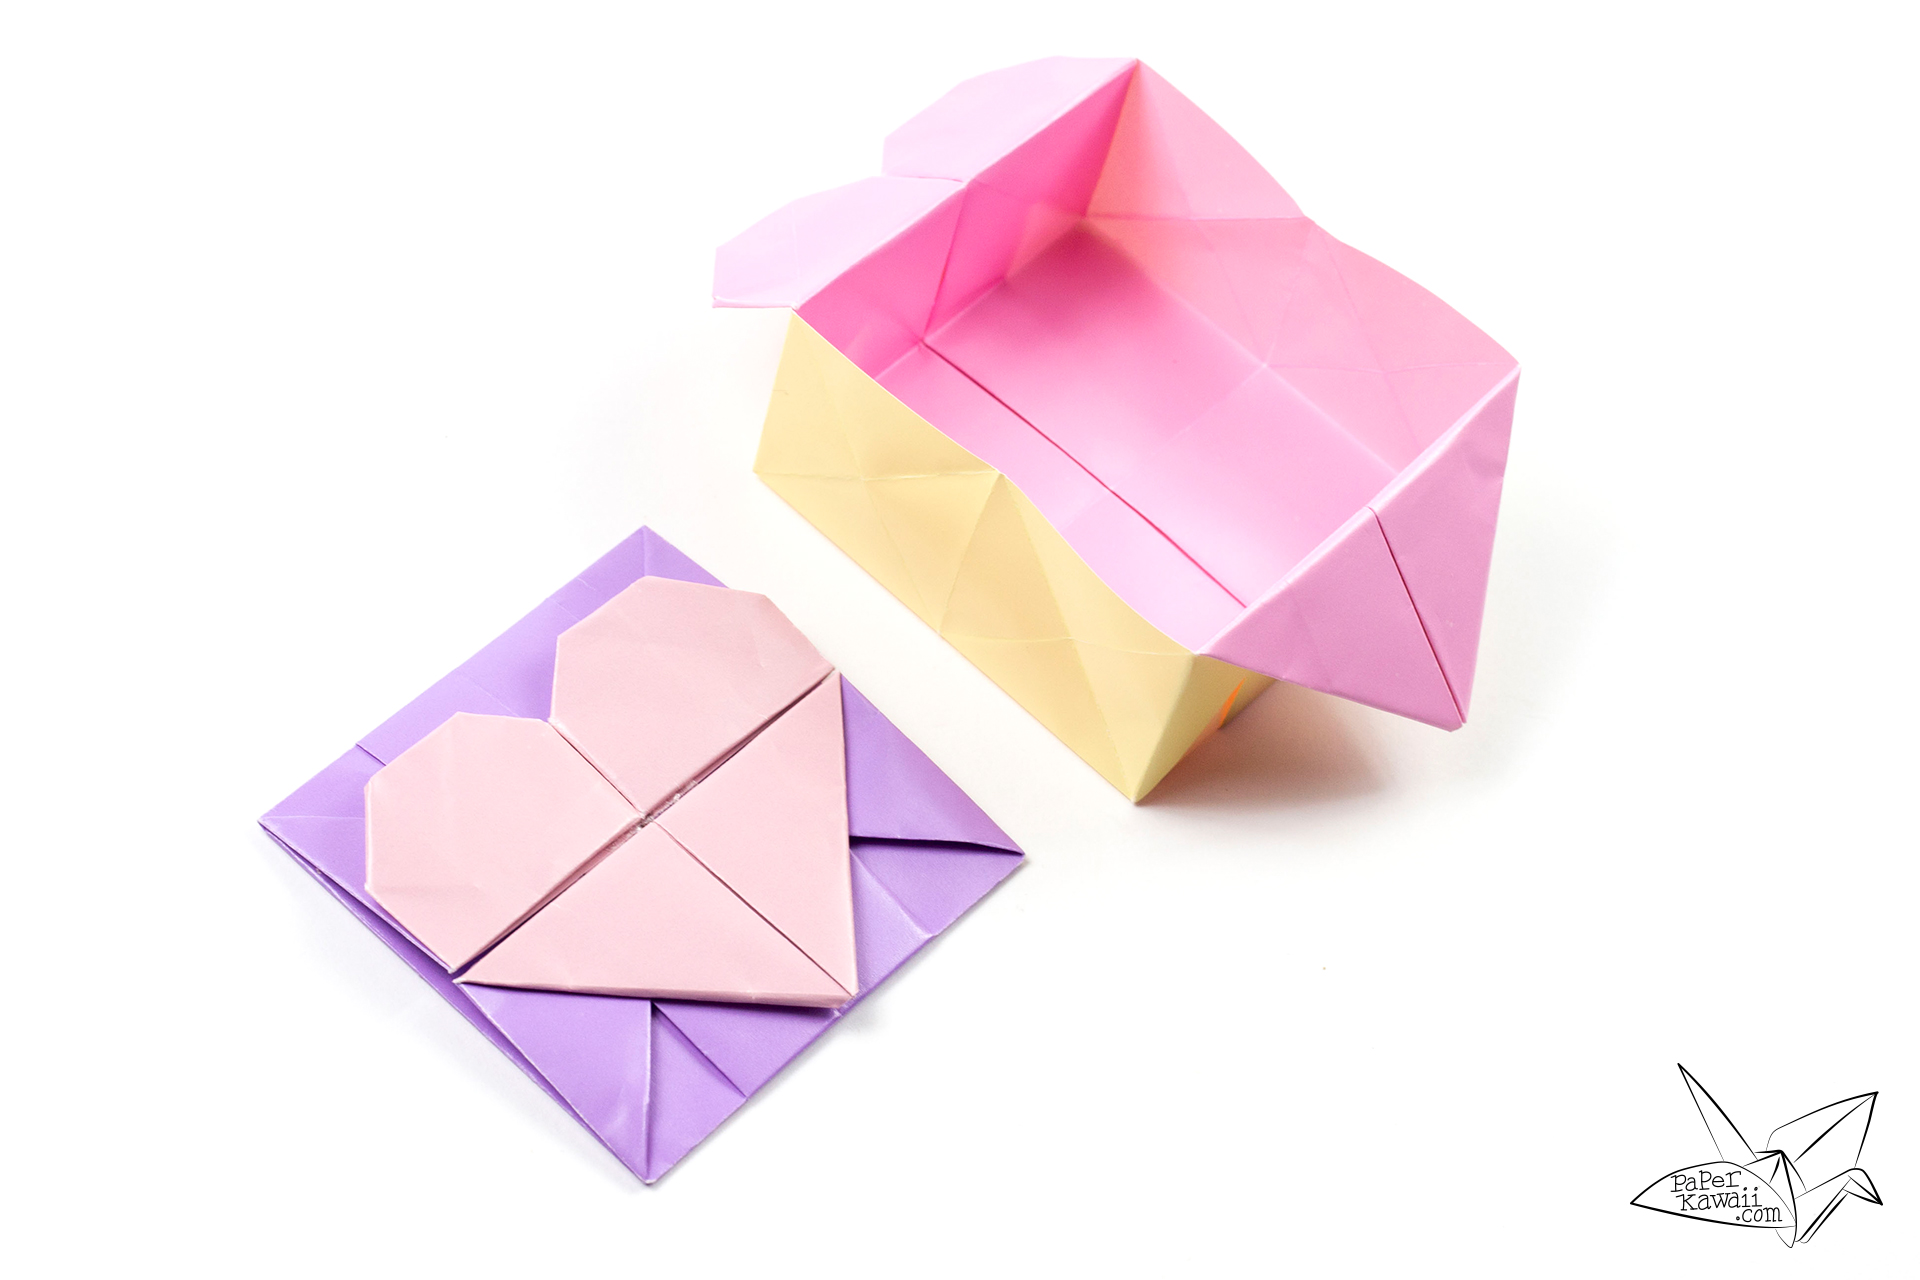 Origami bamboo letterfold folding instructions - Origami Opening Heart Box Envelope Tutorial